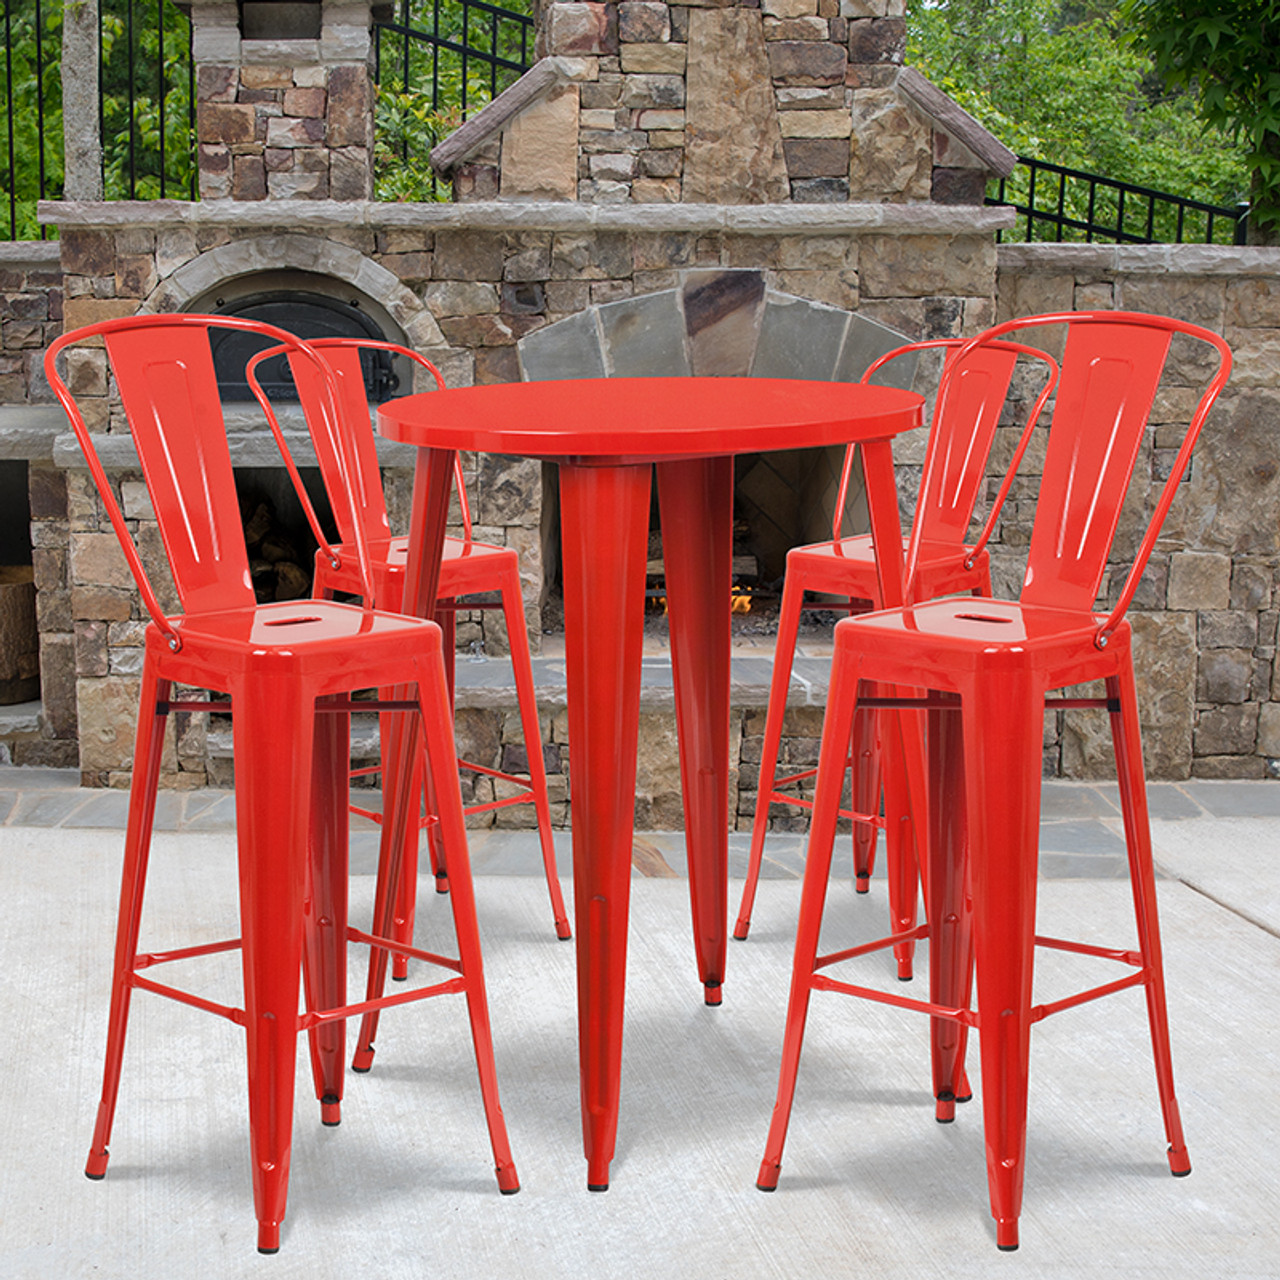 Remarkable 30 Round Red Metal Indoor Outdoor Bar Table Set With 4 Cafe Stools Uwap Interior Chair Design Uwaporg